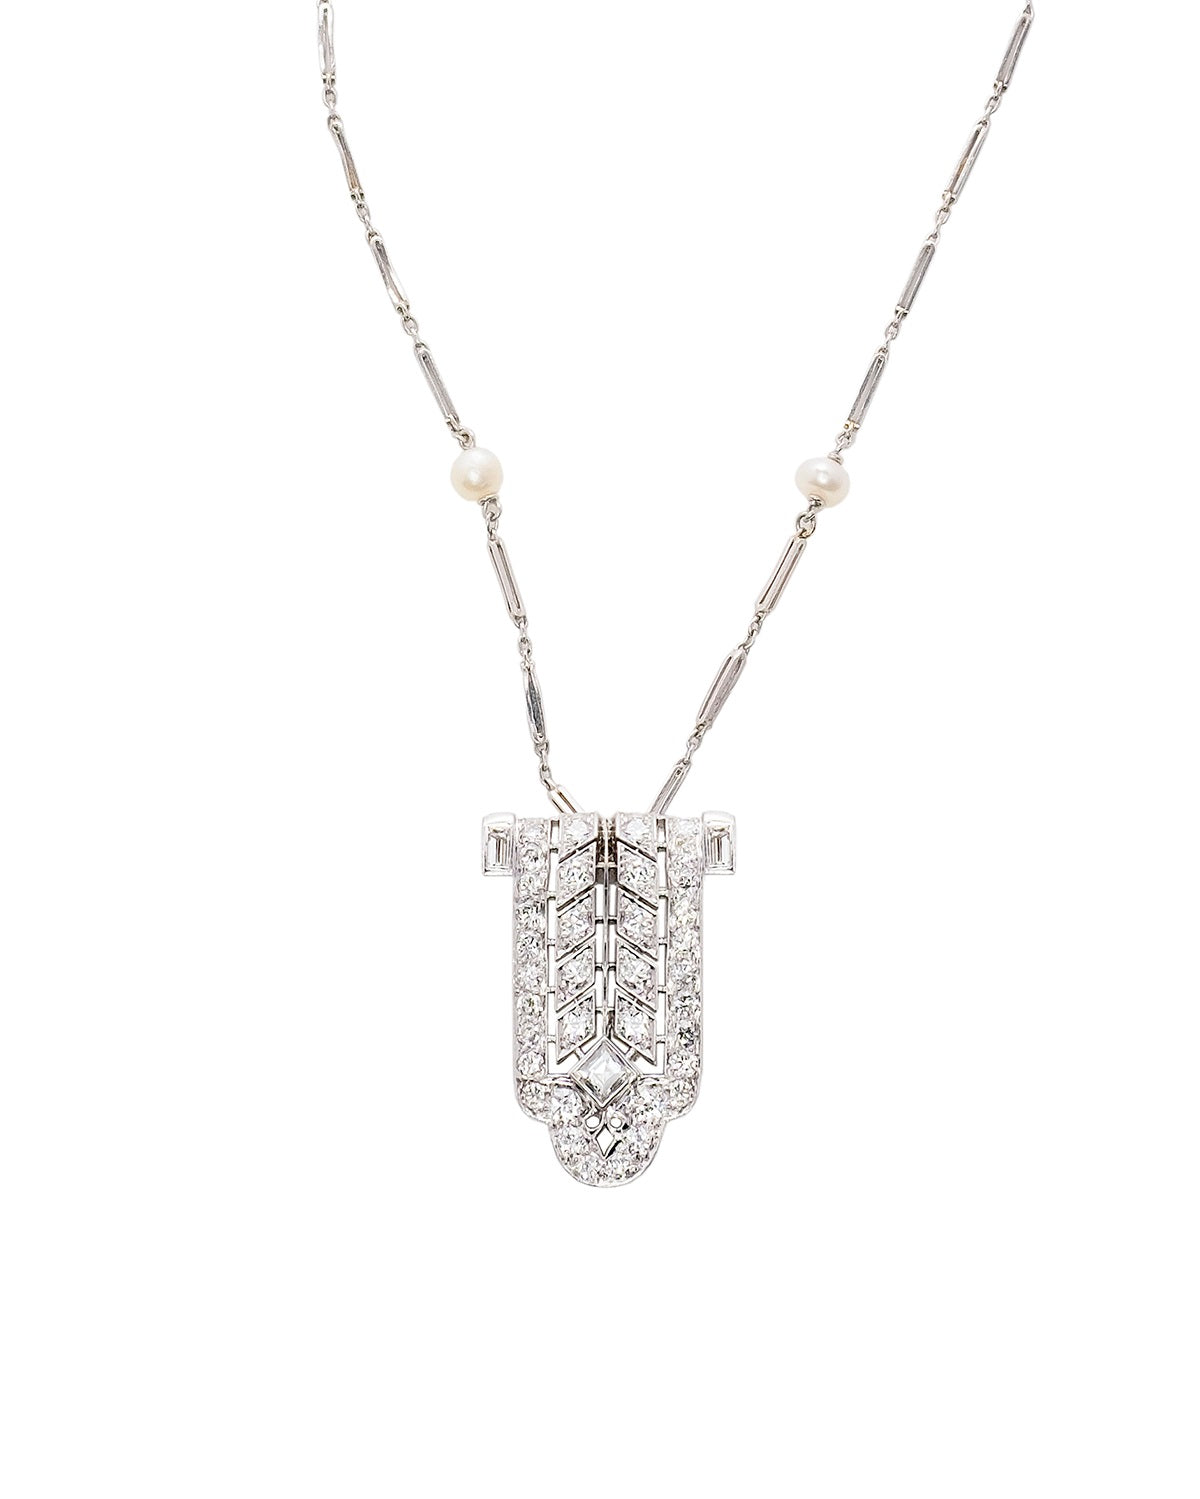 Platinum and Diamond Antique Art Deco Necklace Pendant